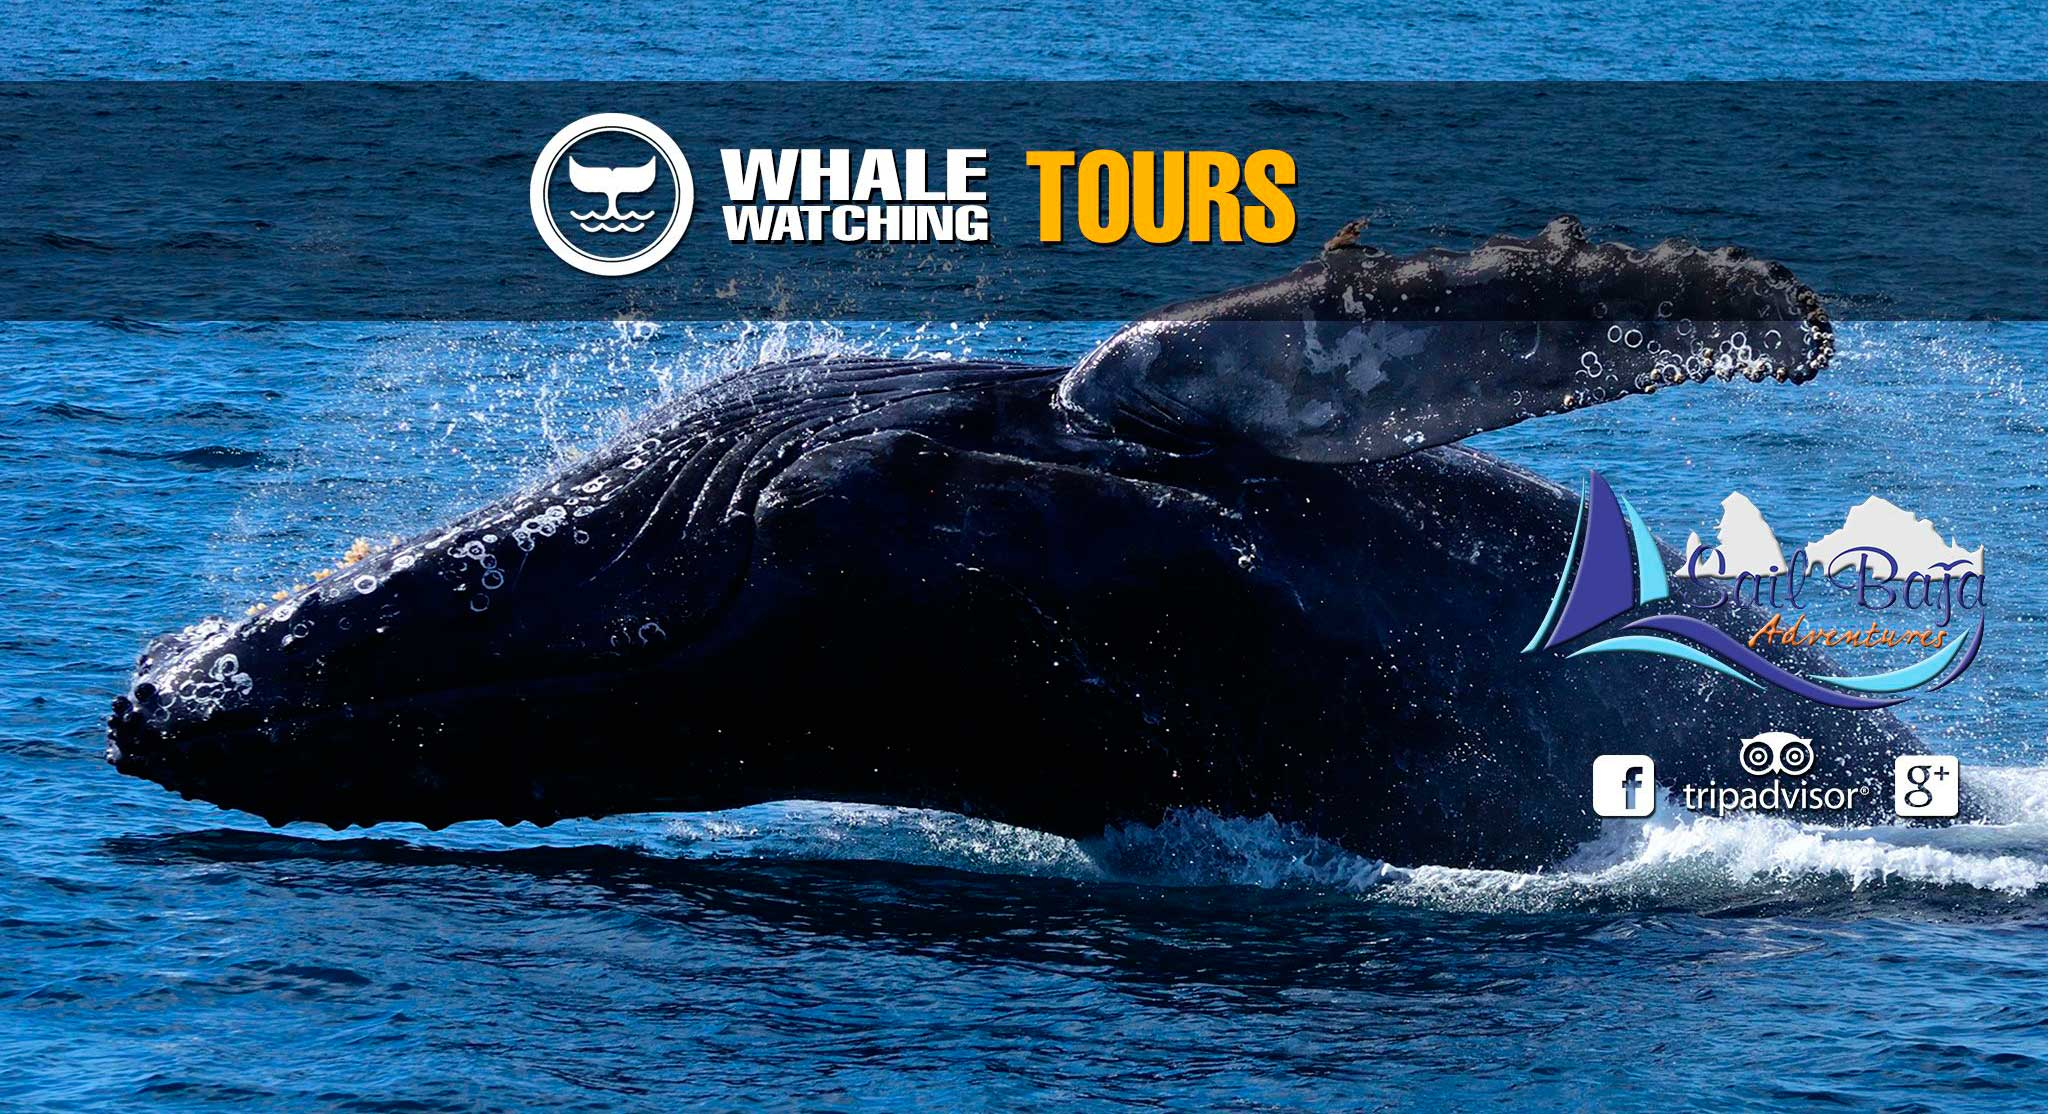 Whale Watching Tours in Cabo San Lucas, Los Cabos, Mexico